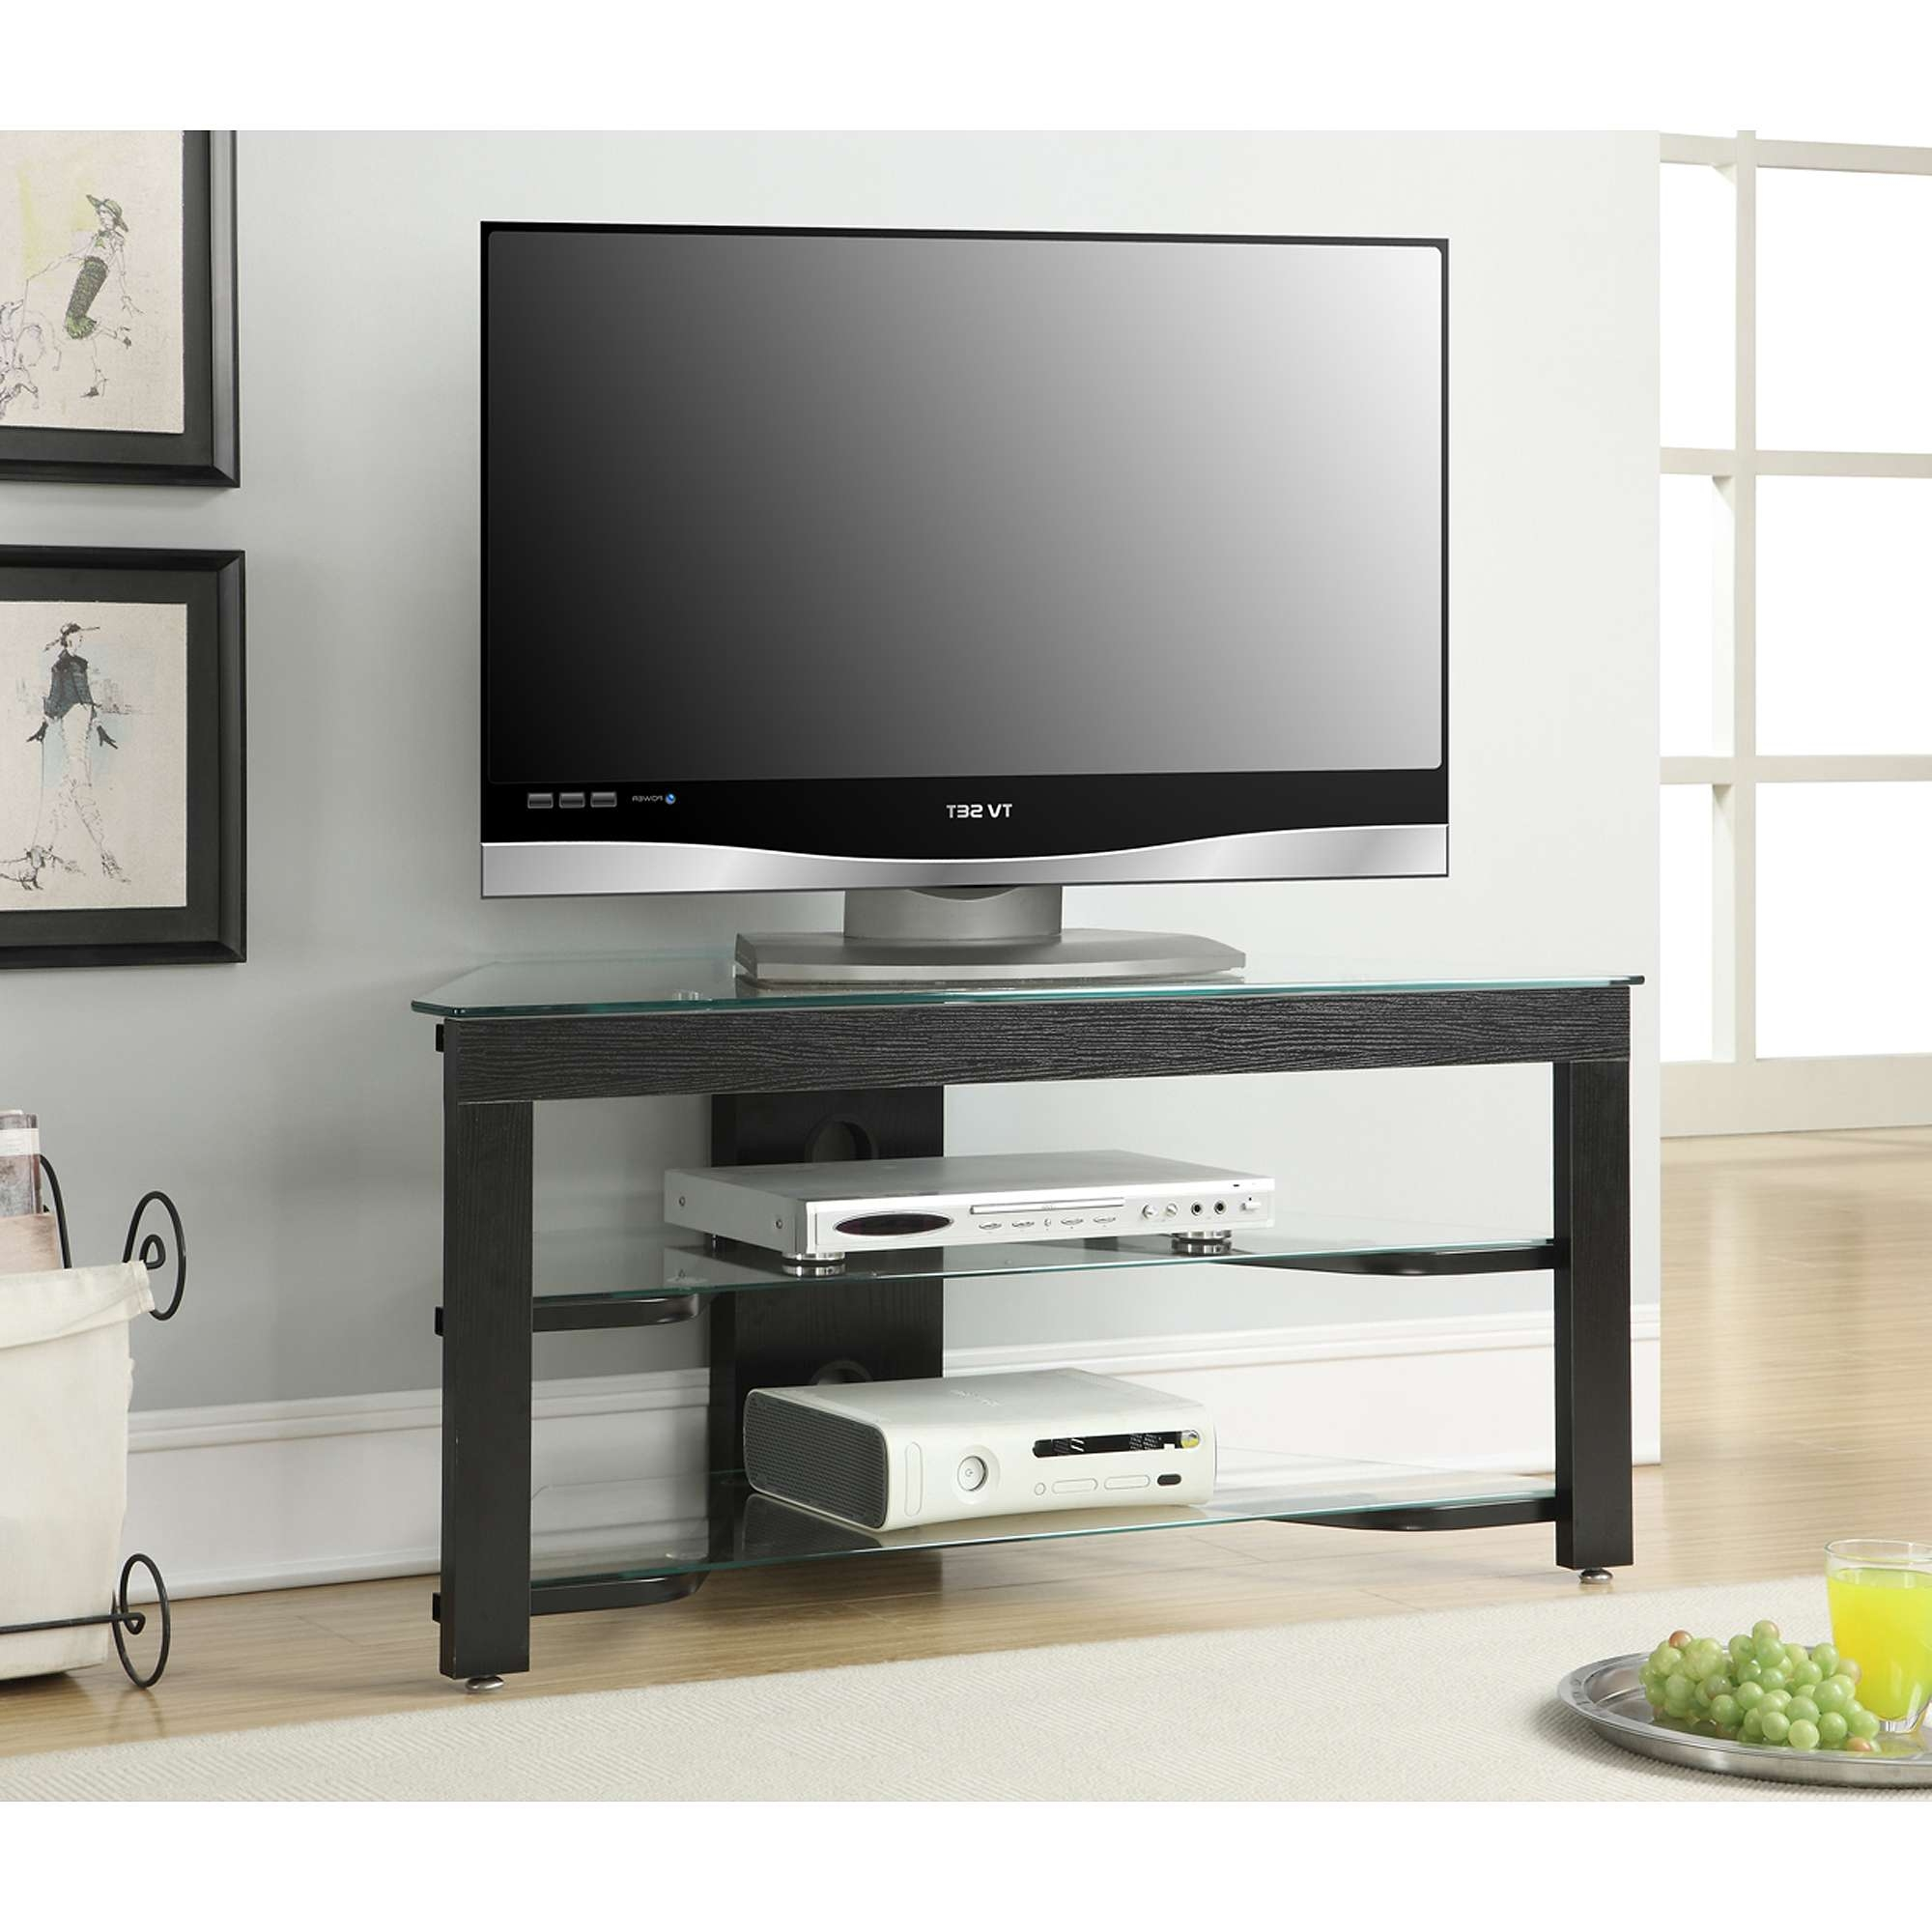 Tv Stand With Rounded Corners – Round Designs Throughout Tv Stands With Rounded Corners (View 6 of 15)